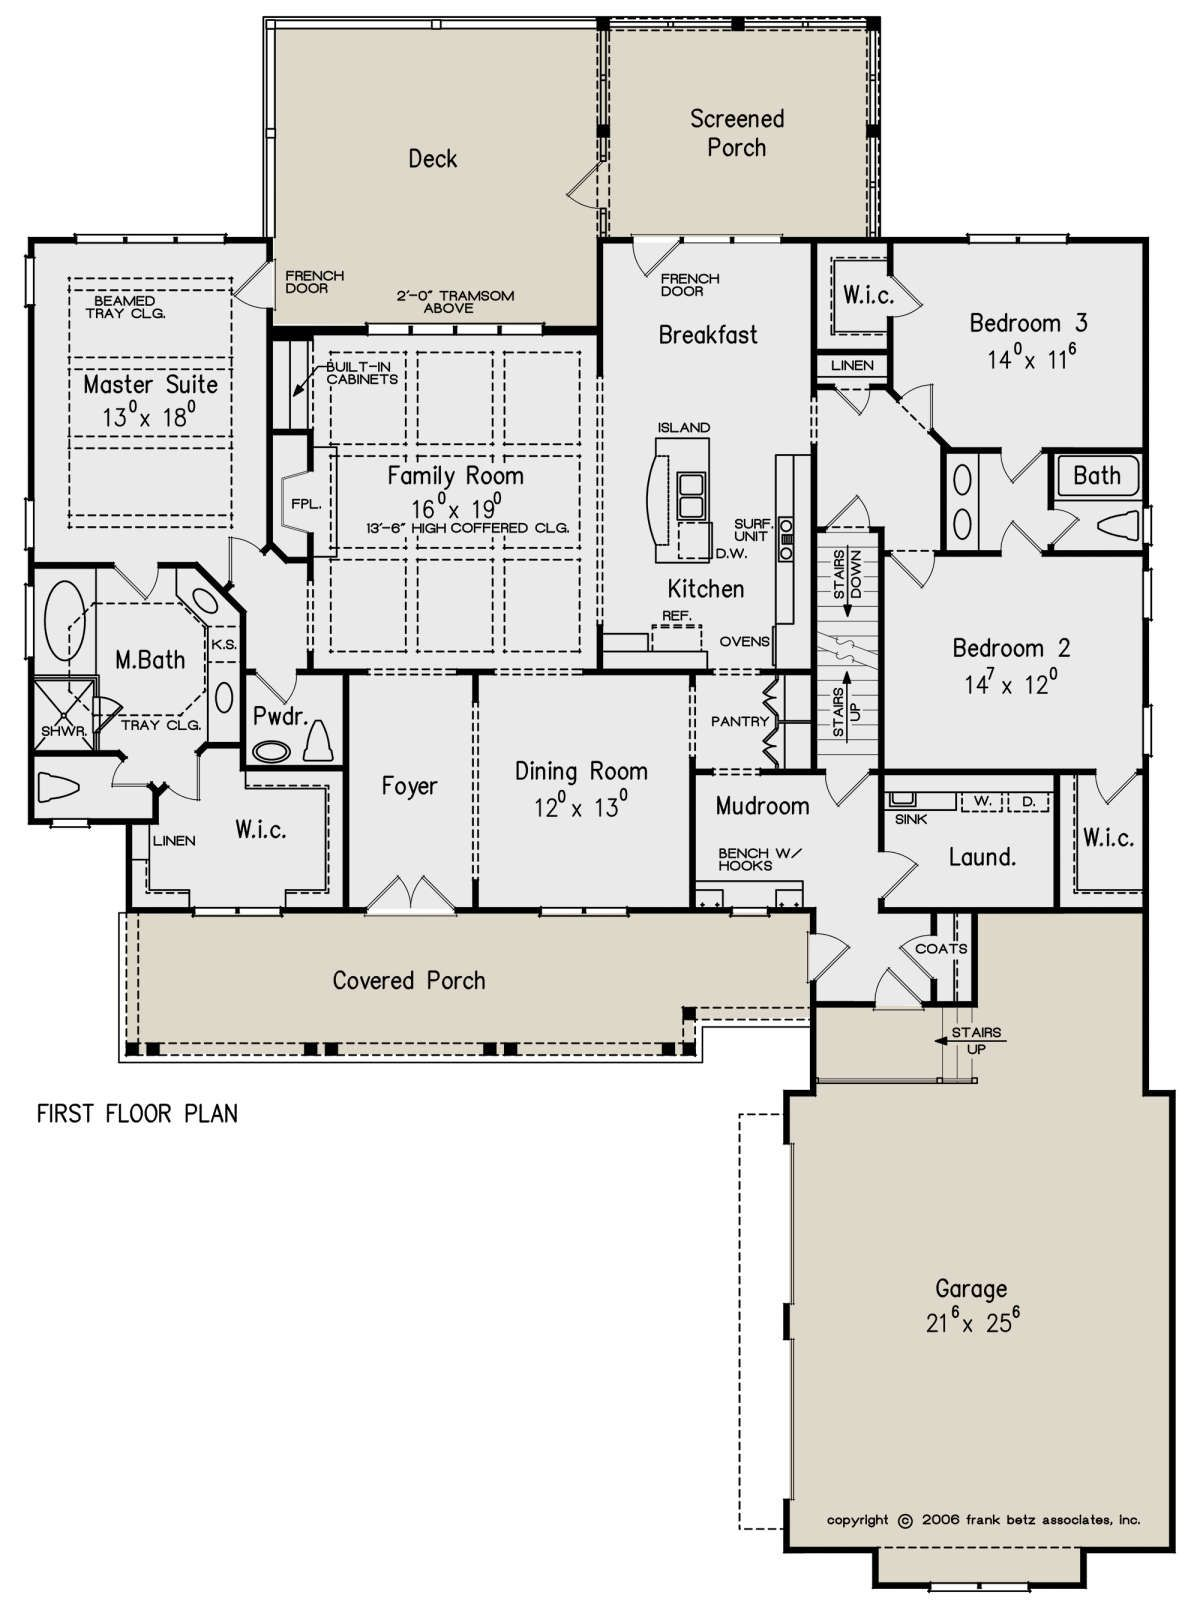 House Plan 8594 00262 Country Plan 2 325 Square Feet 3 4 Bedrooms 2 5 Bathrooms House Plans Floor Plans Bedroom House Plans